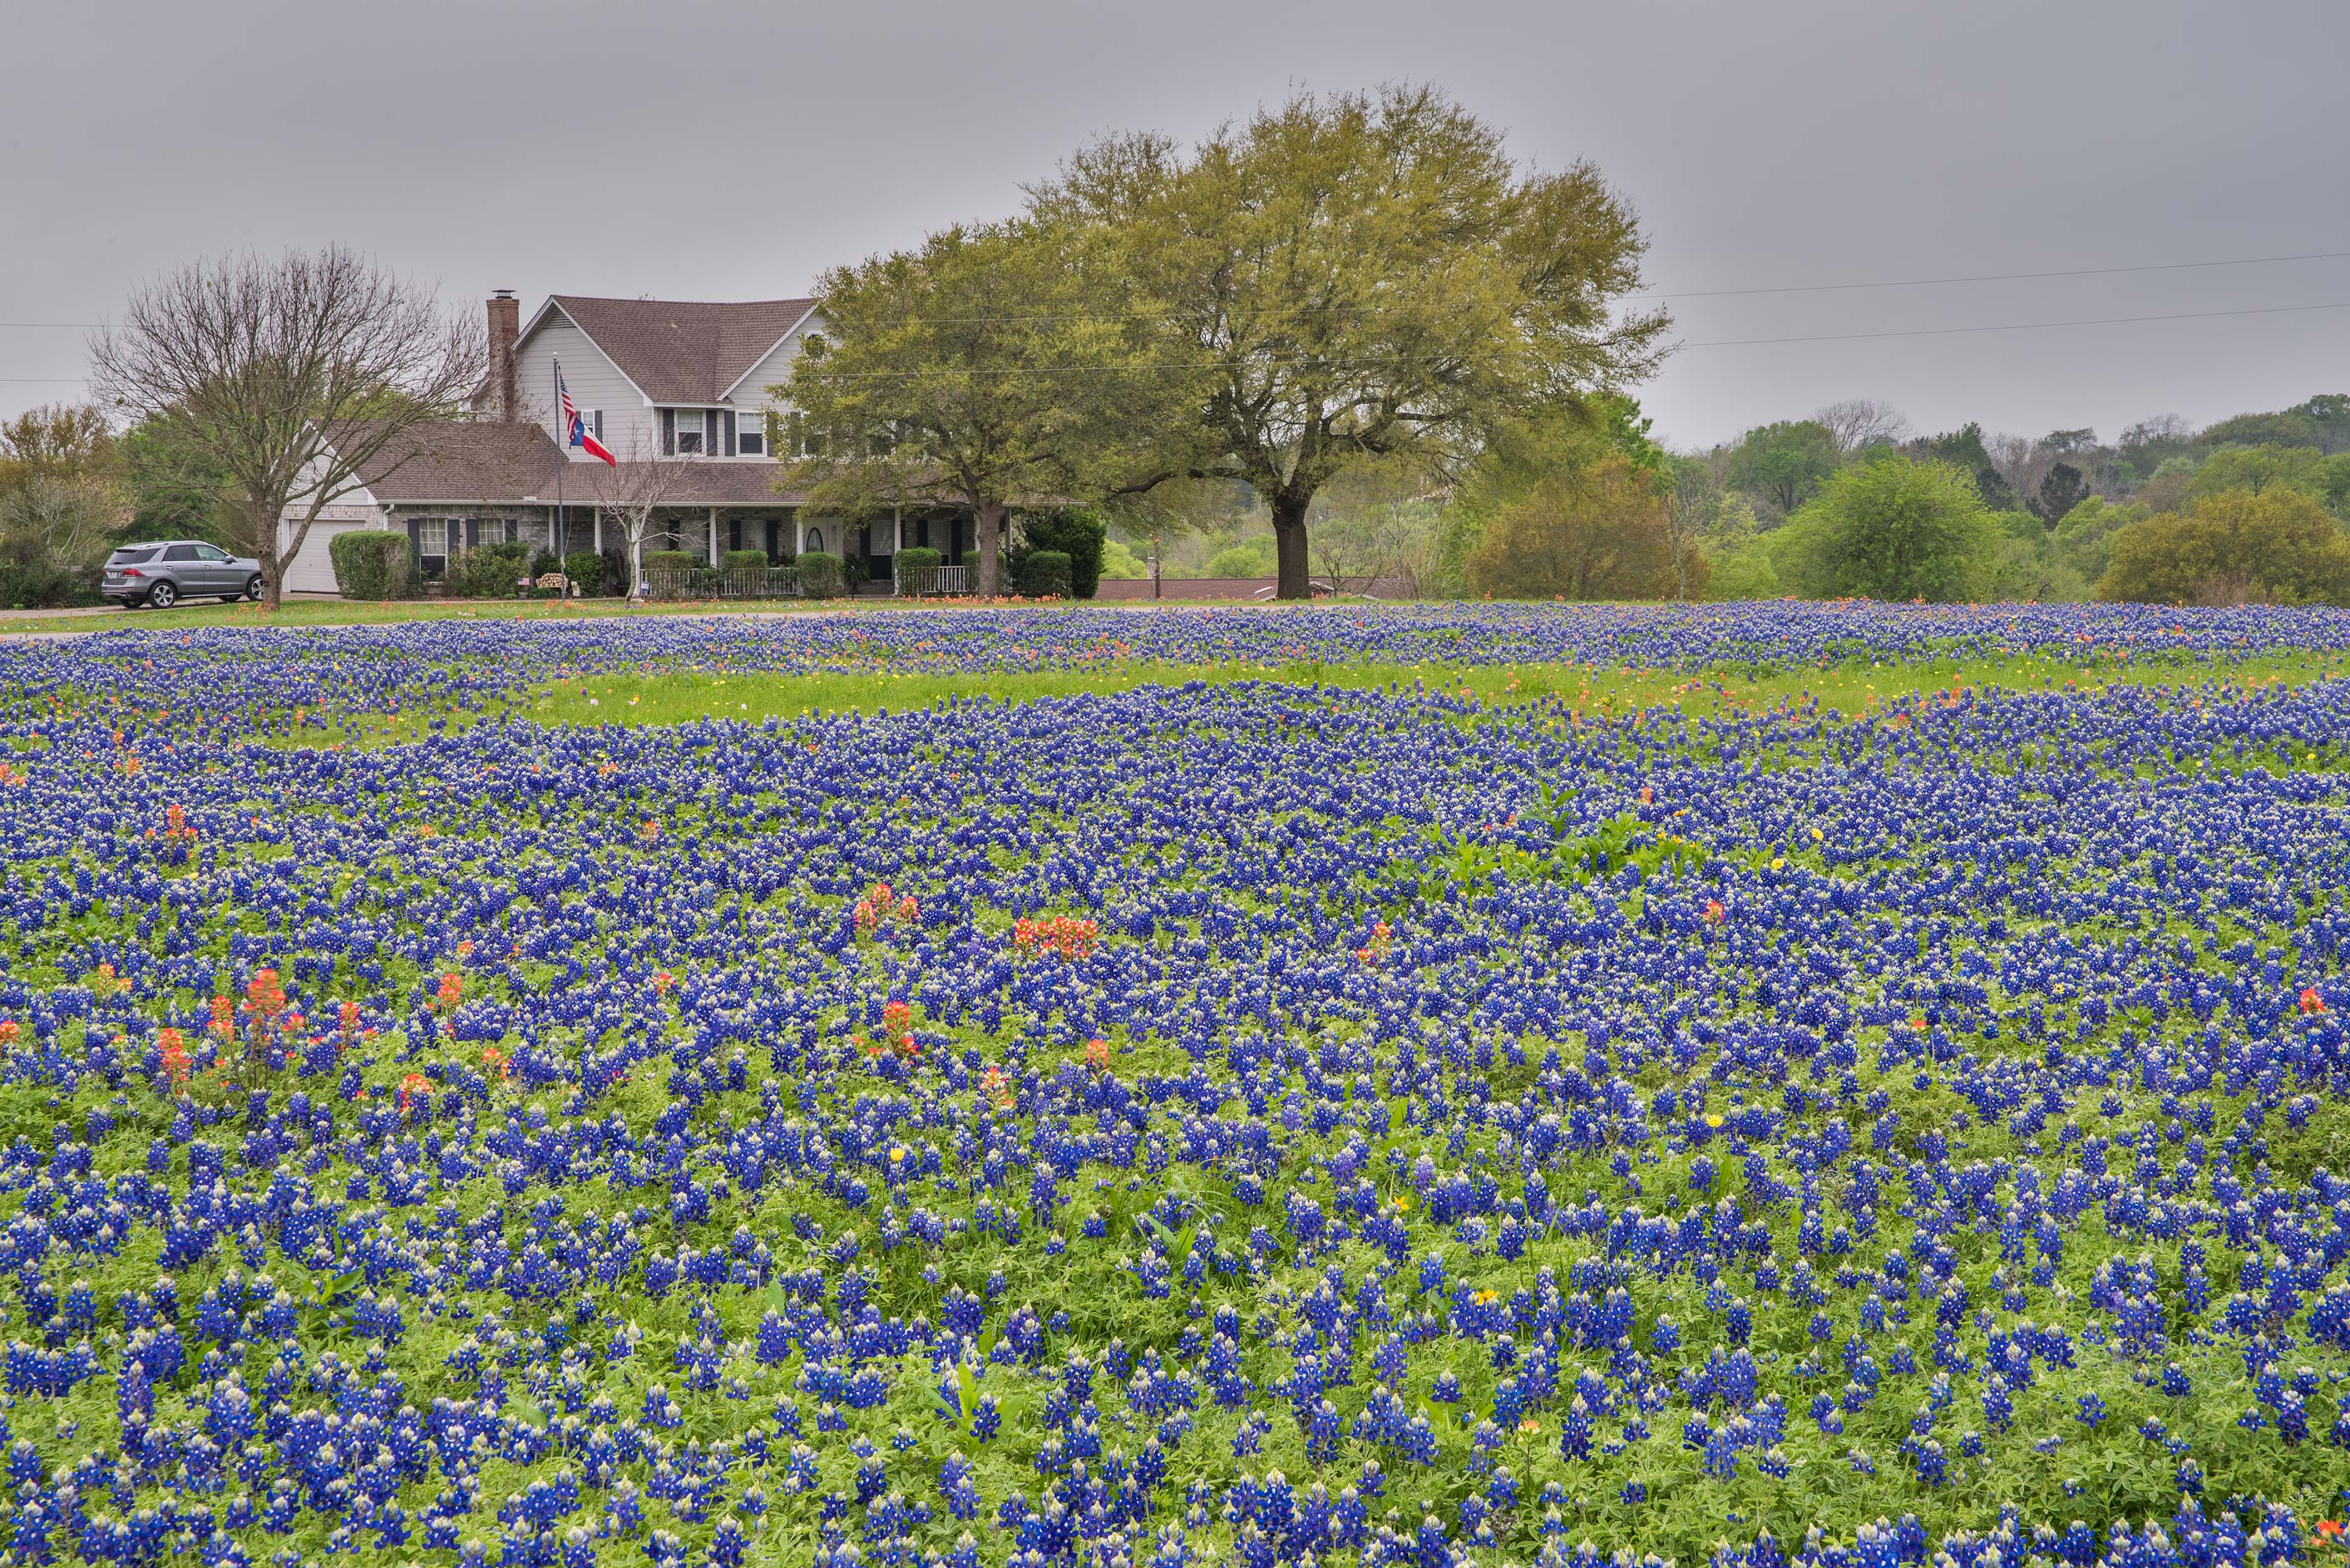 A farm with bluebonnet (Lupinus) flowers north from Chappell Hill. Texas